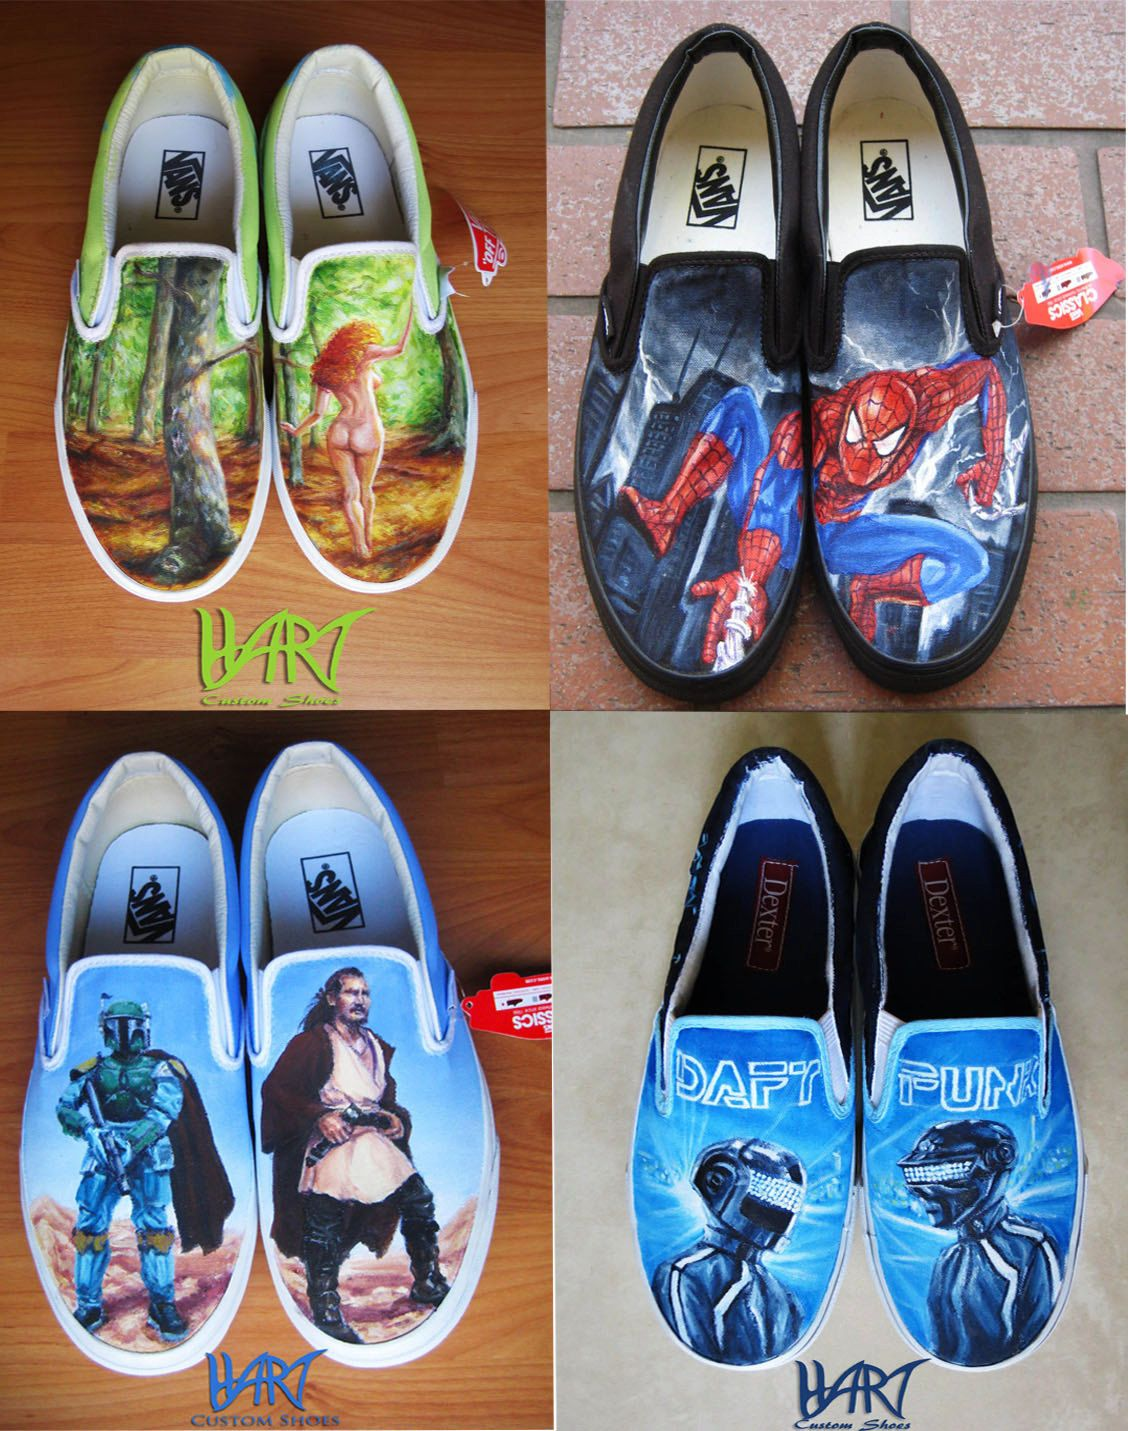 Funny Minivans: Custom Painted Shoes